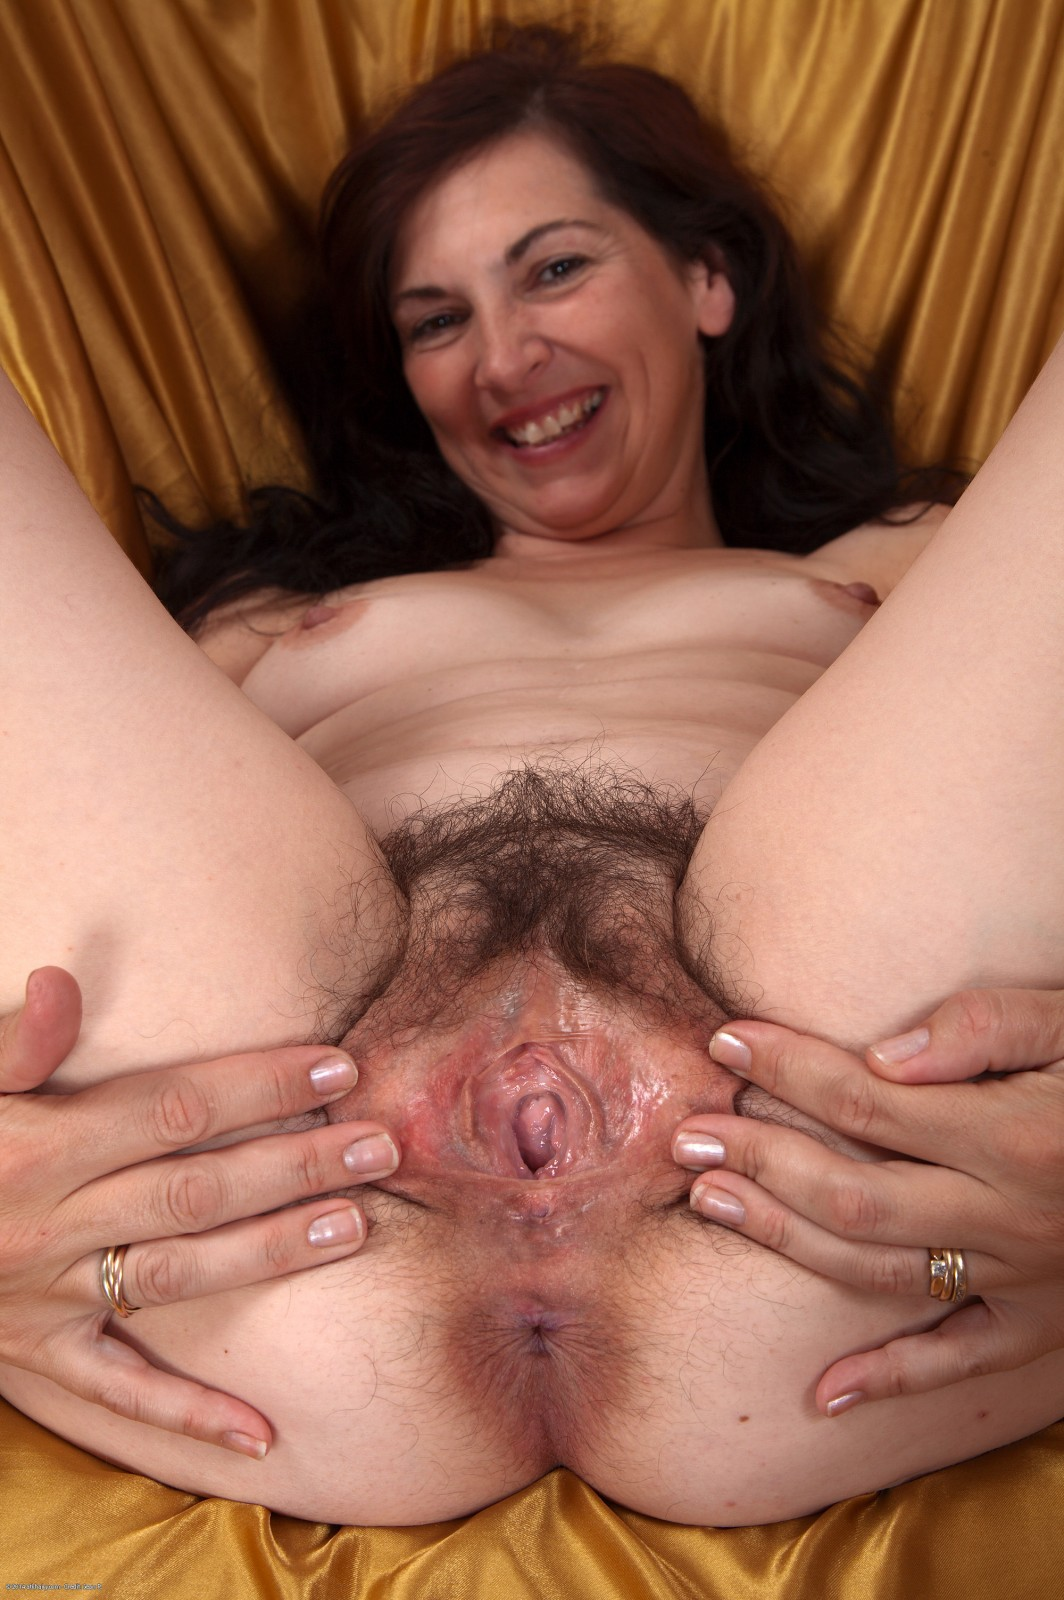 Mature wife leslie gives incredibly pleasureable